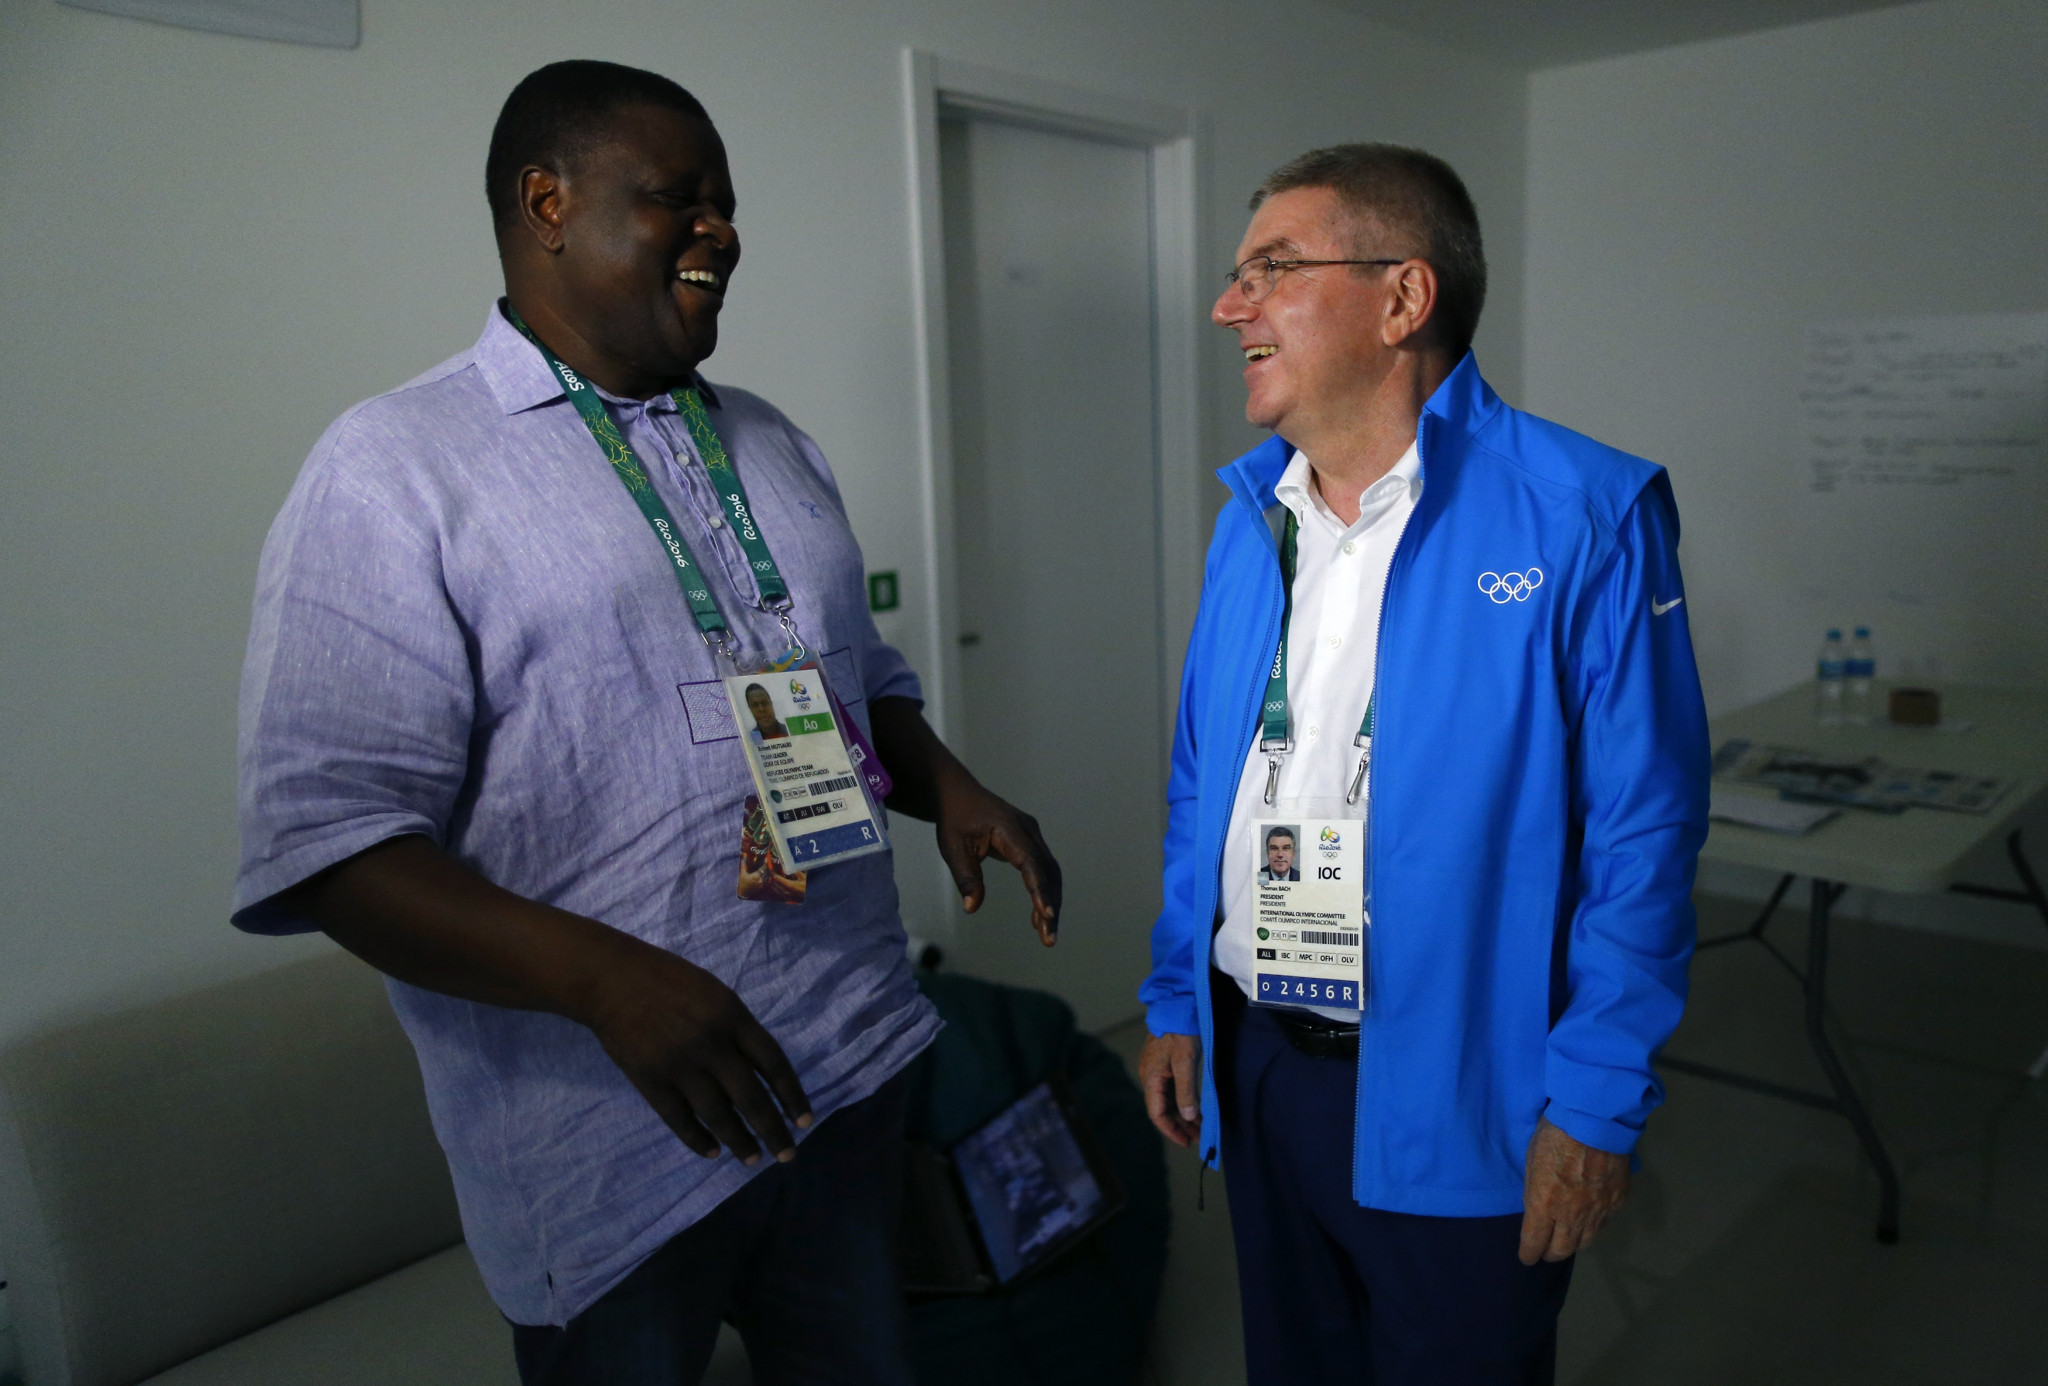 Robert Mutsauki, pictured here with International Olympic Committee President Thomas Bach, has been hired to draft the National Olympic Committee of Kenya's strategic plan for 2019 to 2024 ©Getty Images